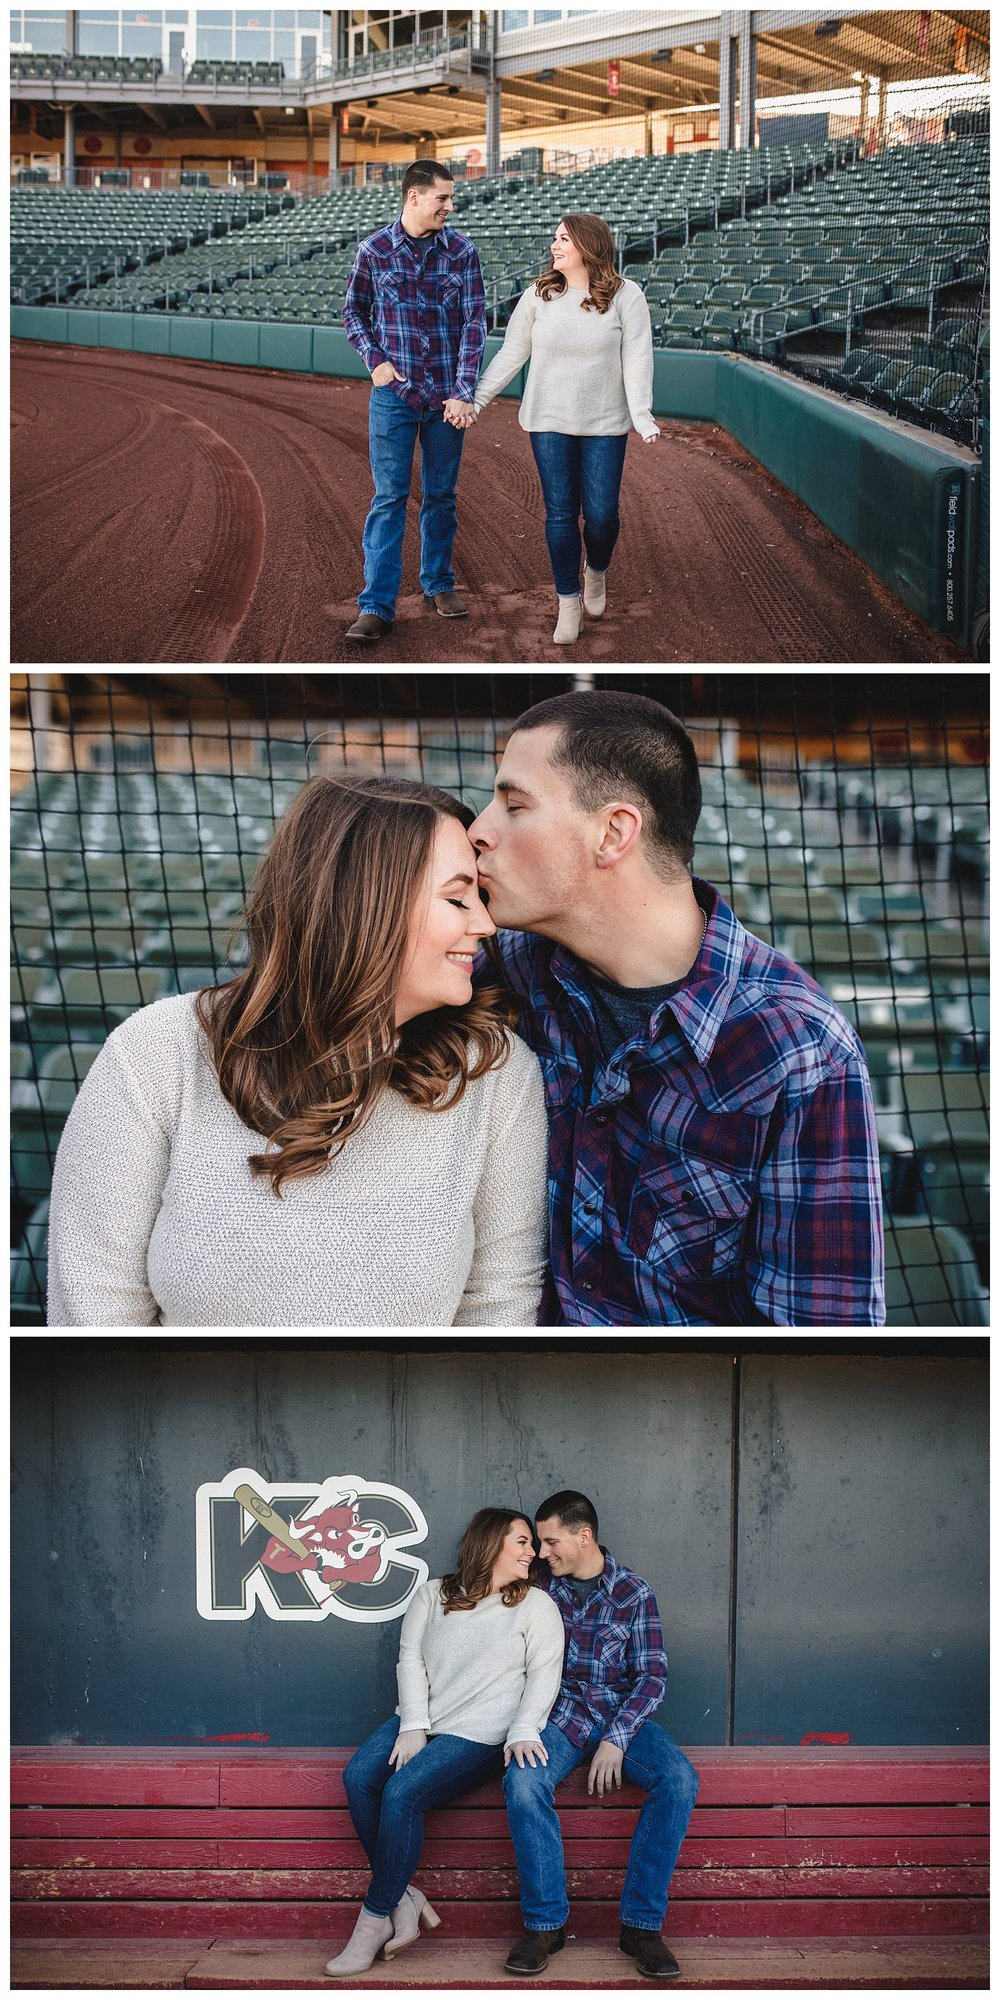 Kelsey_Diane_Photography_T-Bones_Stadium_Kansas_Wandering_Adventourus_Kansas_City_Engagement_0085.jpg